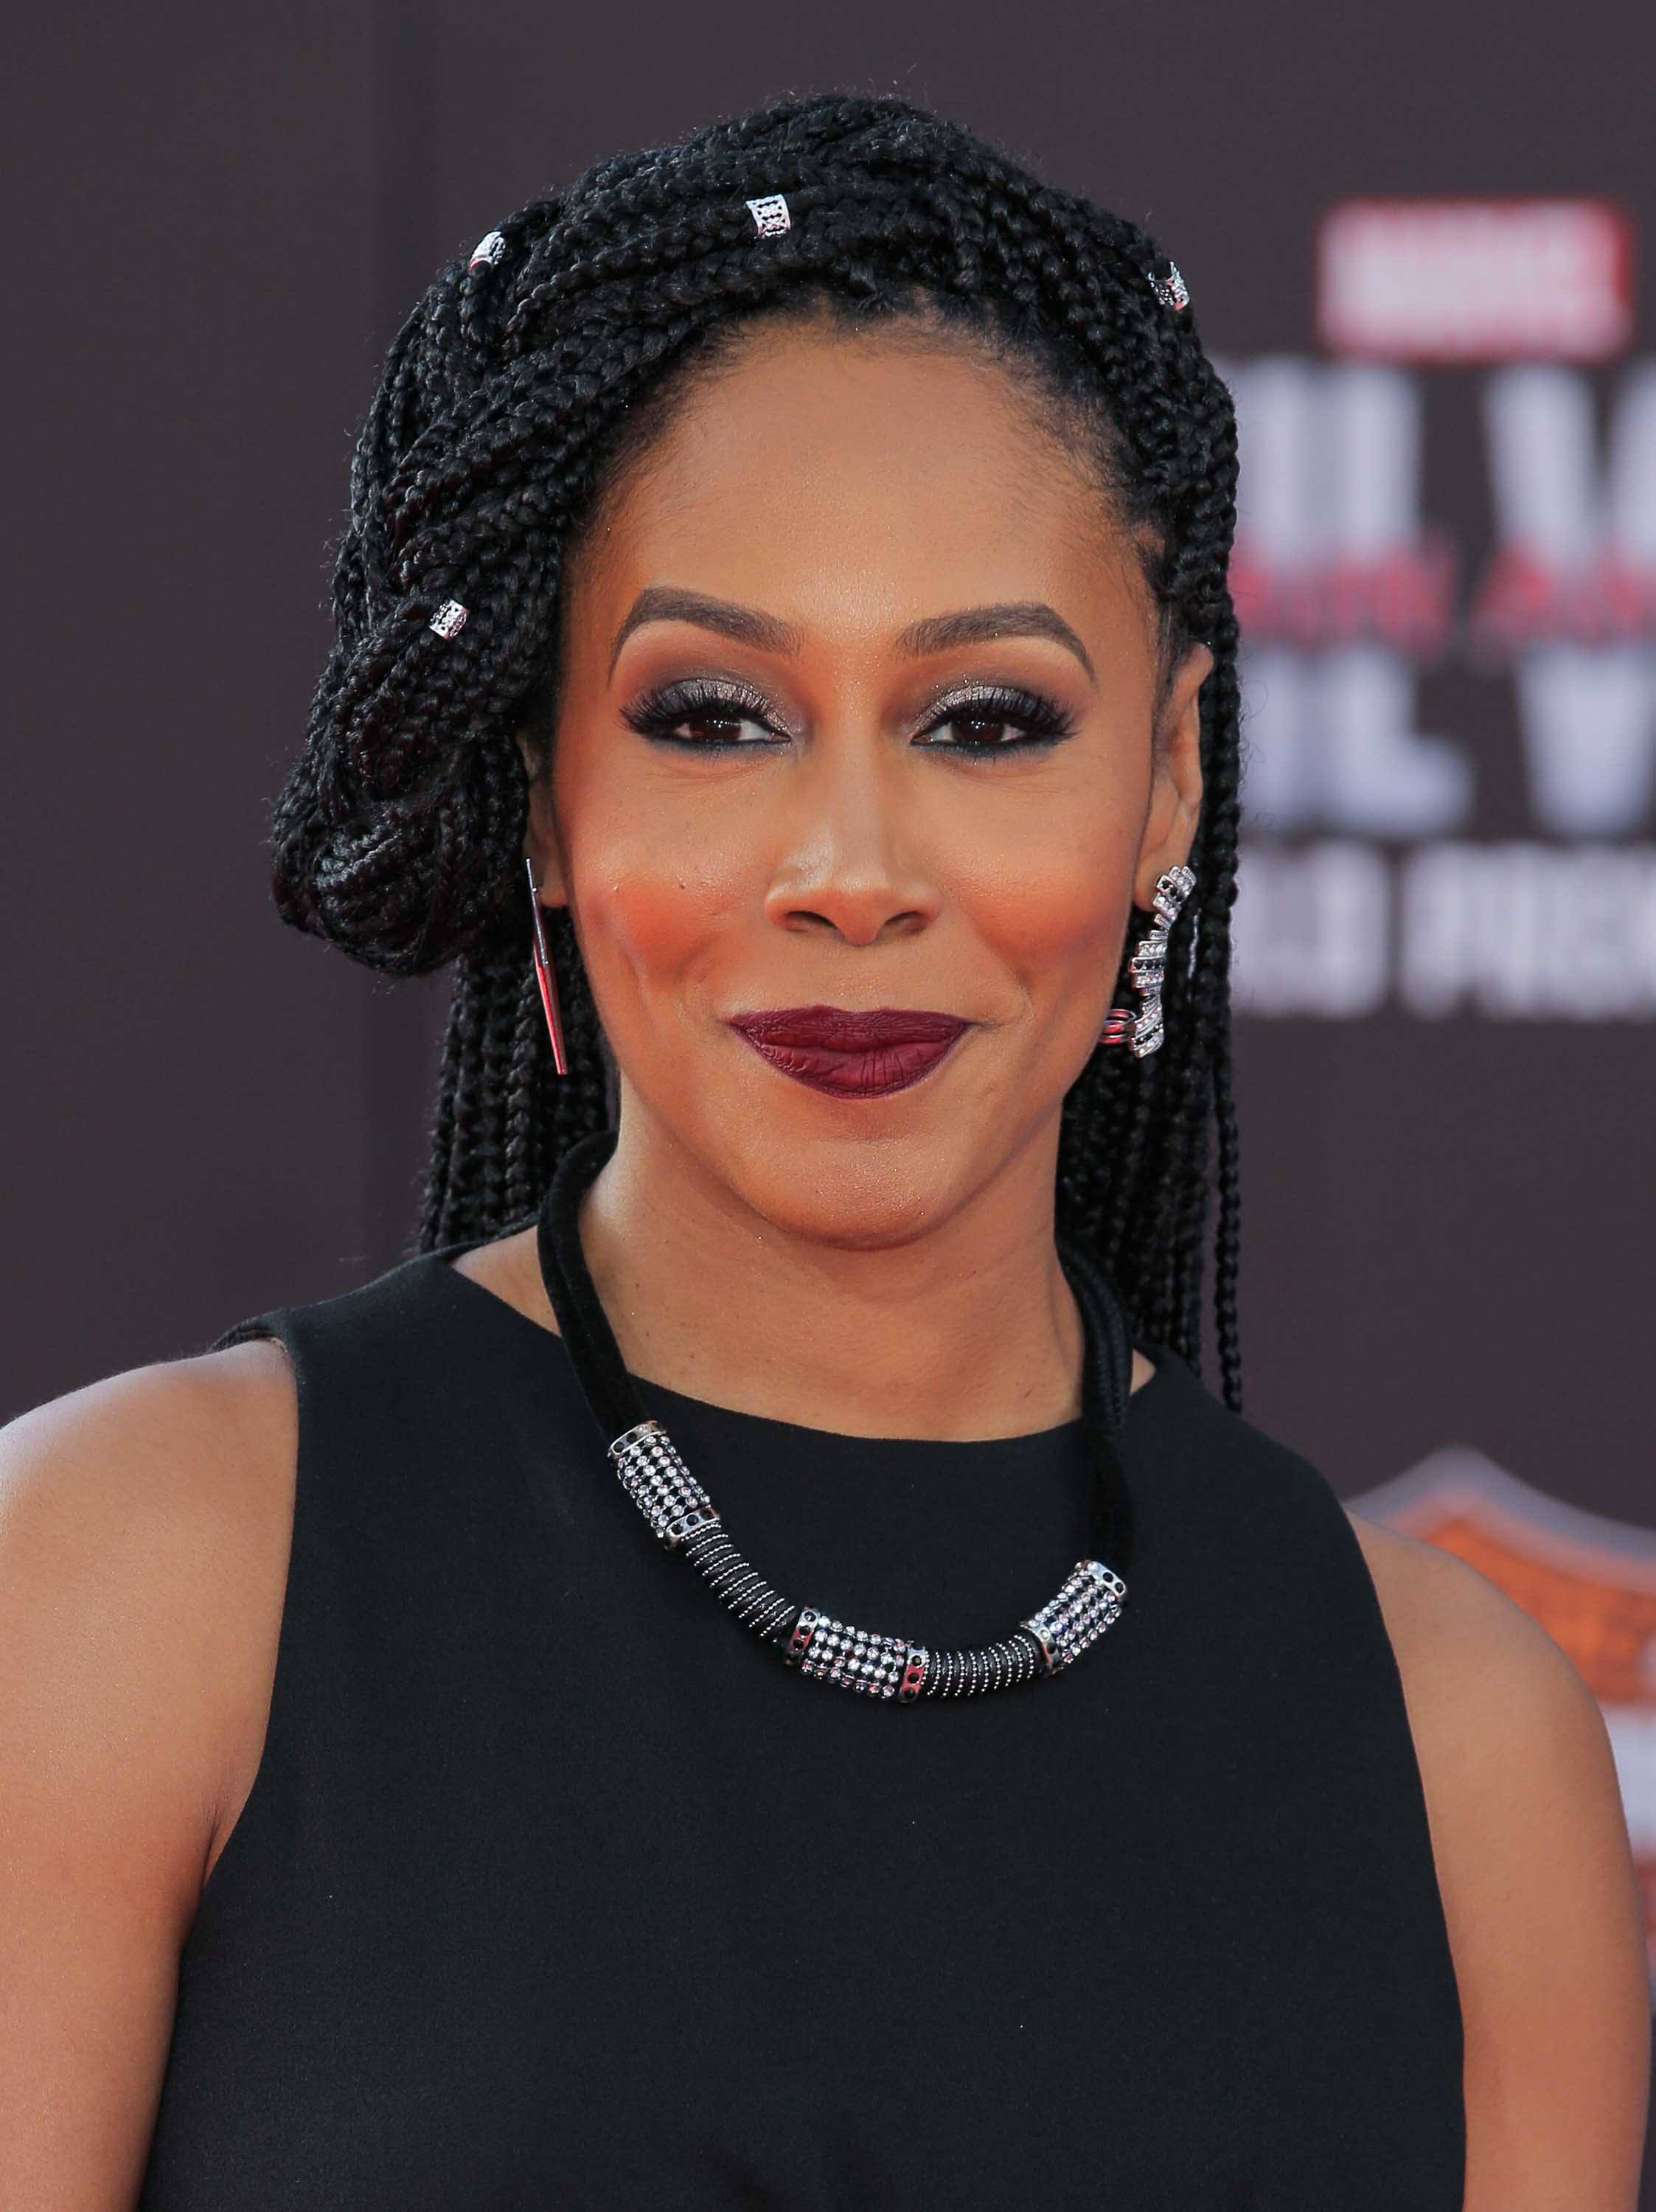 hair accessories 2016: All Things Hair - IMAGE - celebrity hairstyles Simone Cook braids cuffs